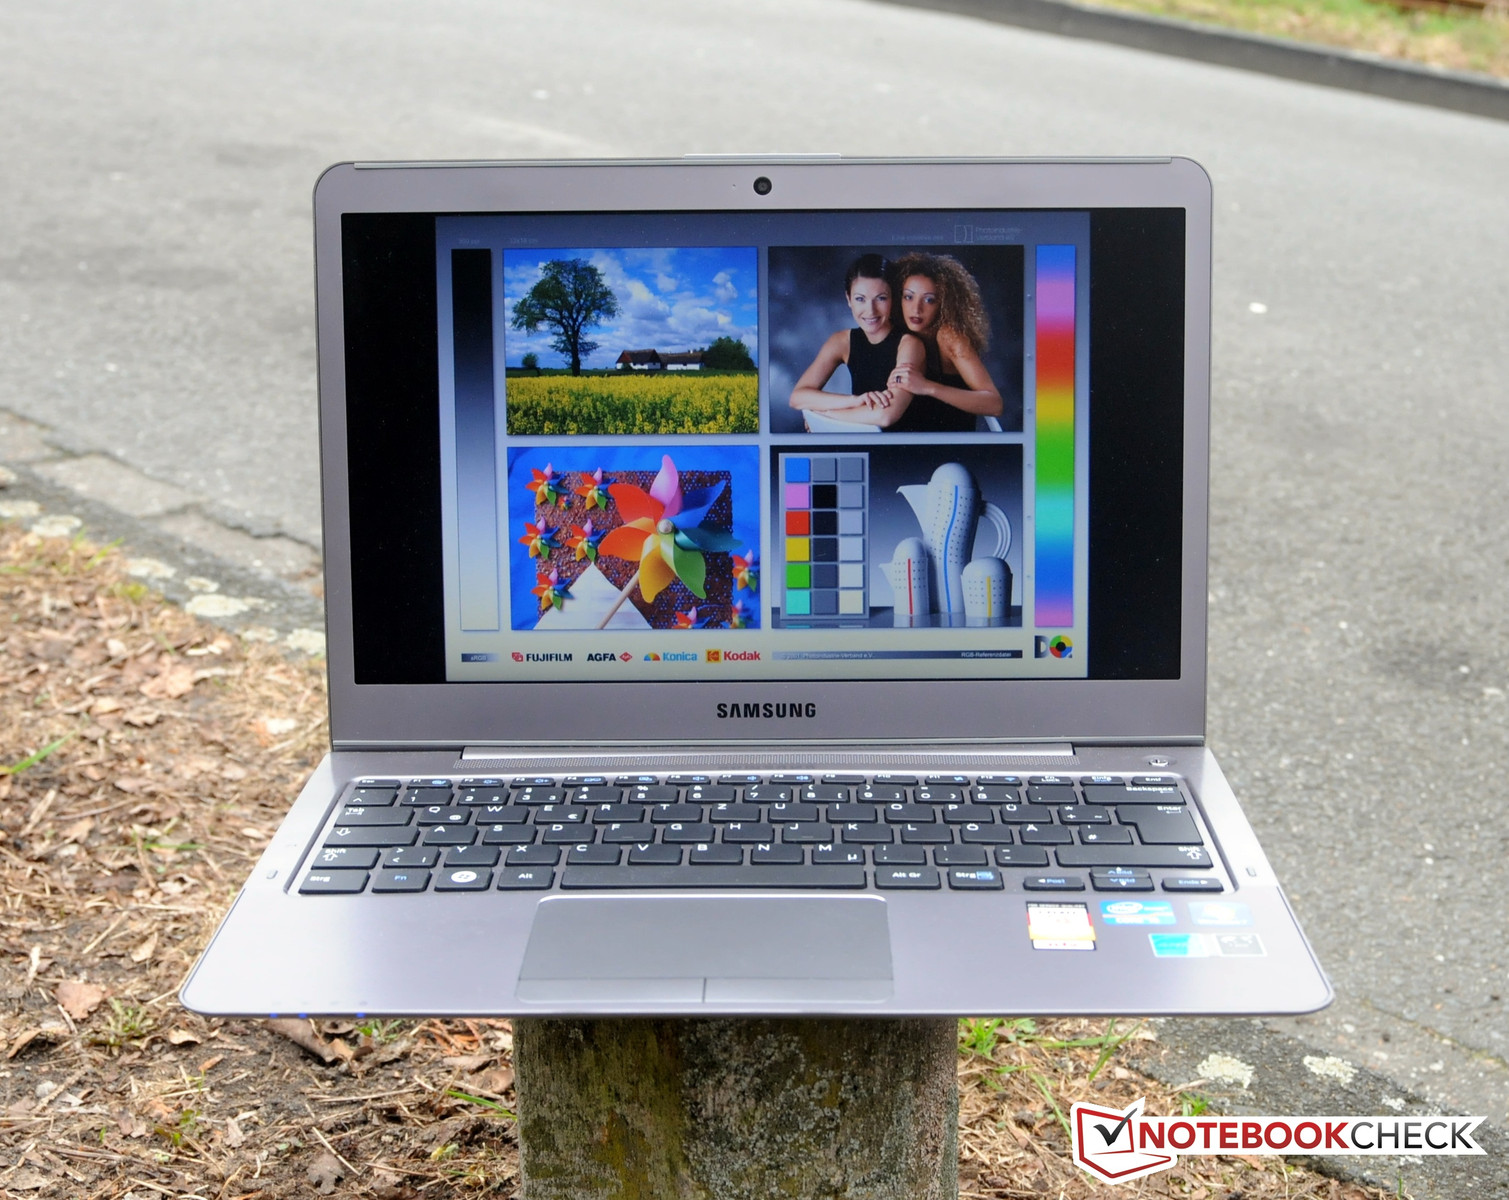 Notebook samsung cena - The Notebook Is Very Suitable For Outdoor Use